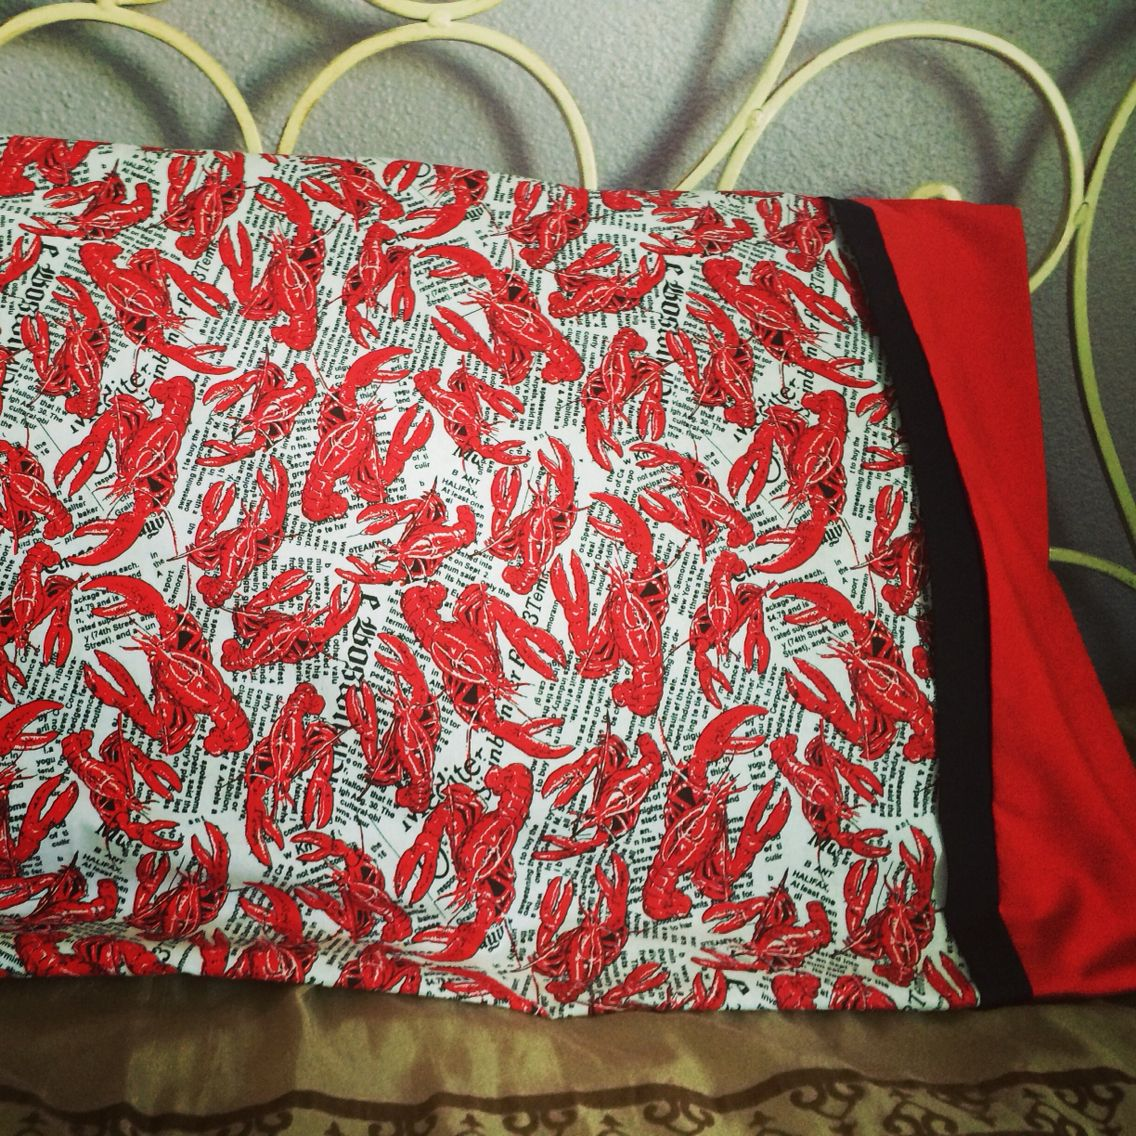 Lobster Tube Pillow Case I Made This For My 3 Year Old Whos Really Into Lobsters I Found Some Great How To Videos On Youtube